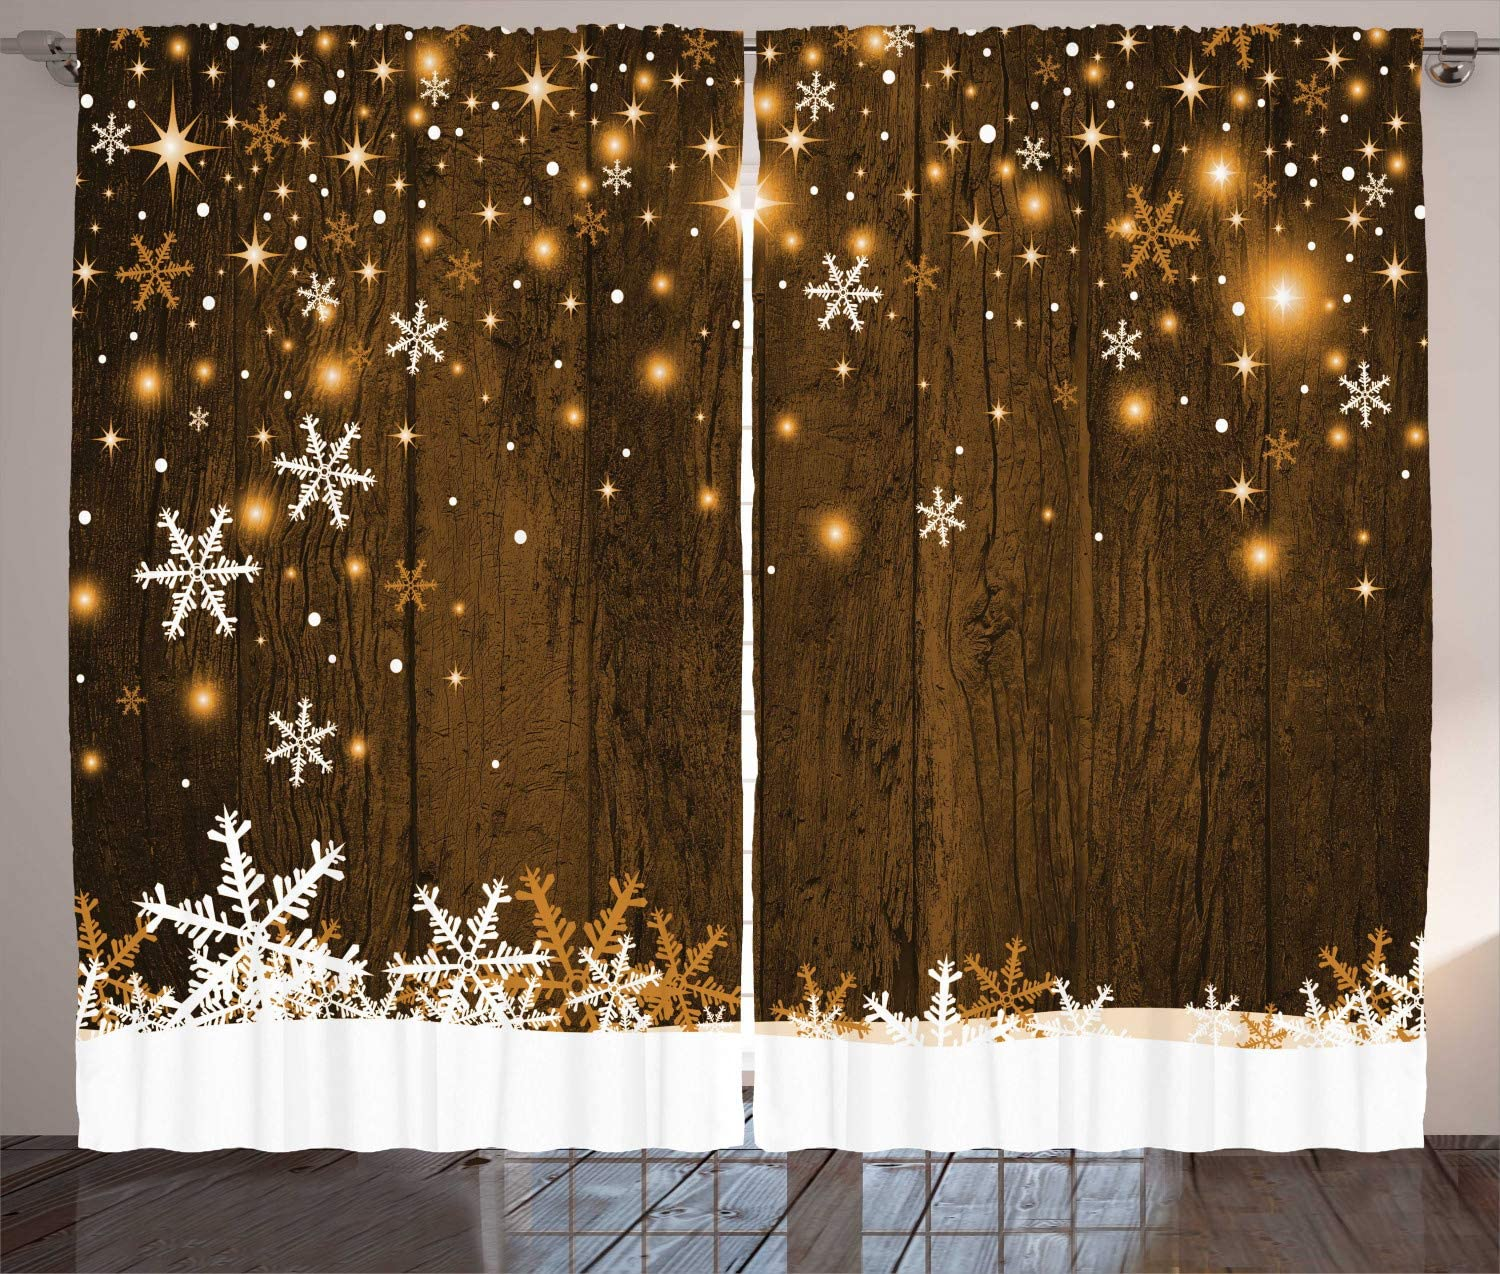 """Ambesonne Christmas Curtains, Rustic Wooden Backdrop with Snowflakes and Warm Traditional Celebration Print, Living Room Bedroom Window Drapes 2 Panel Set, 108"""" X 84"""", White Brown"""